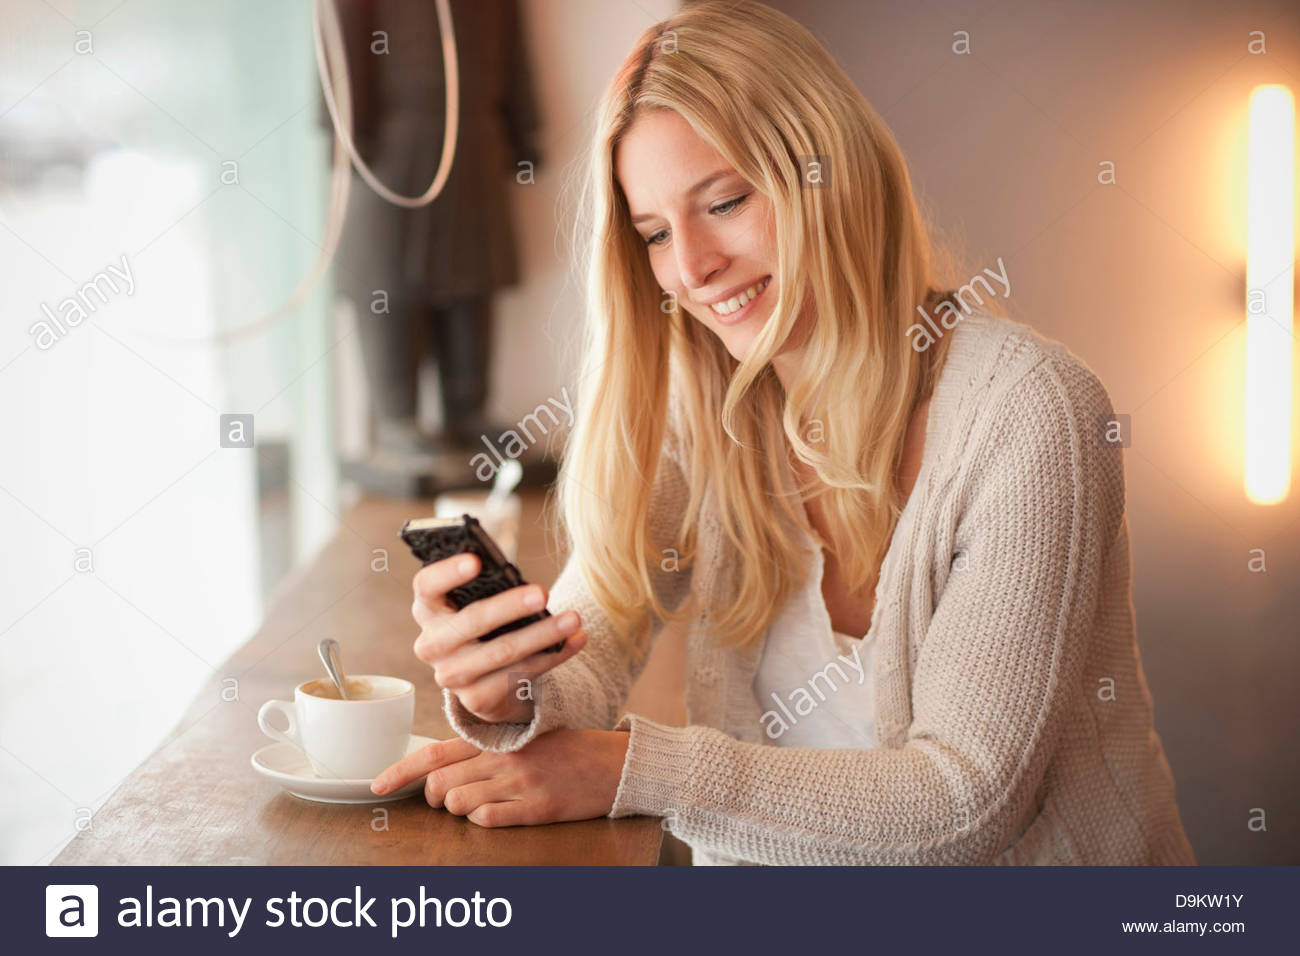 Young woman using cellphone in cafe - Stock Image